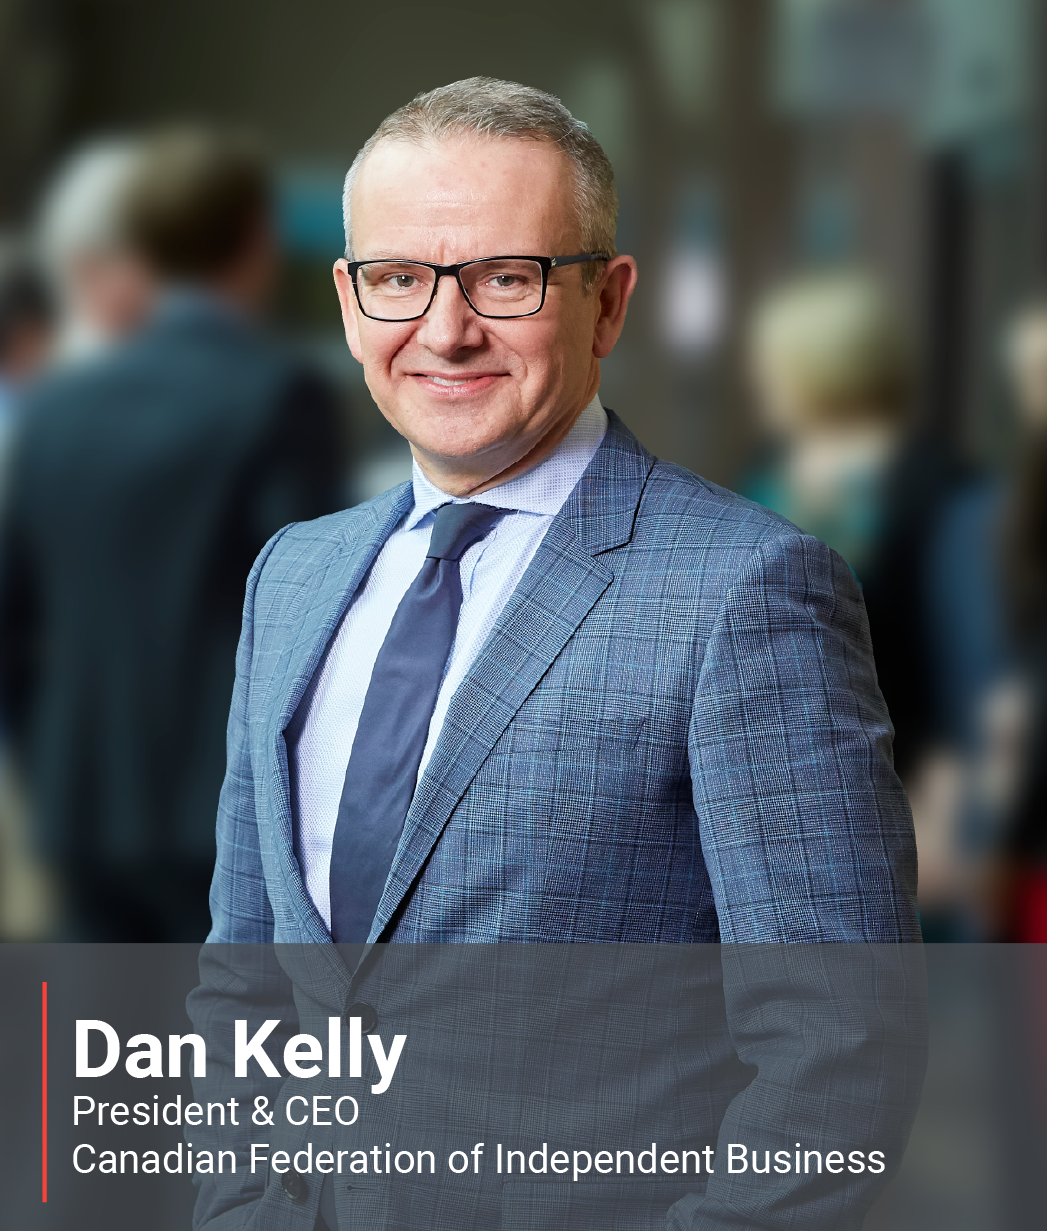 Image of Dan Kelly - President and Chief Executive Officer of Canadian Federation of Independent Business (CFIB)